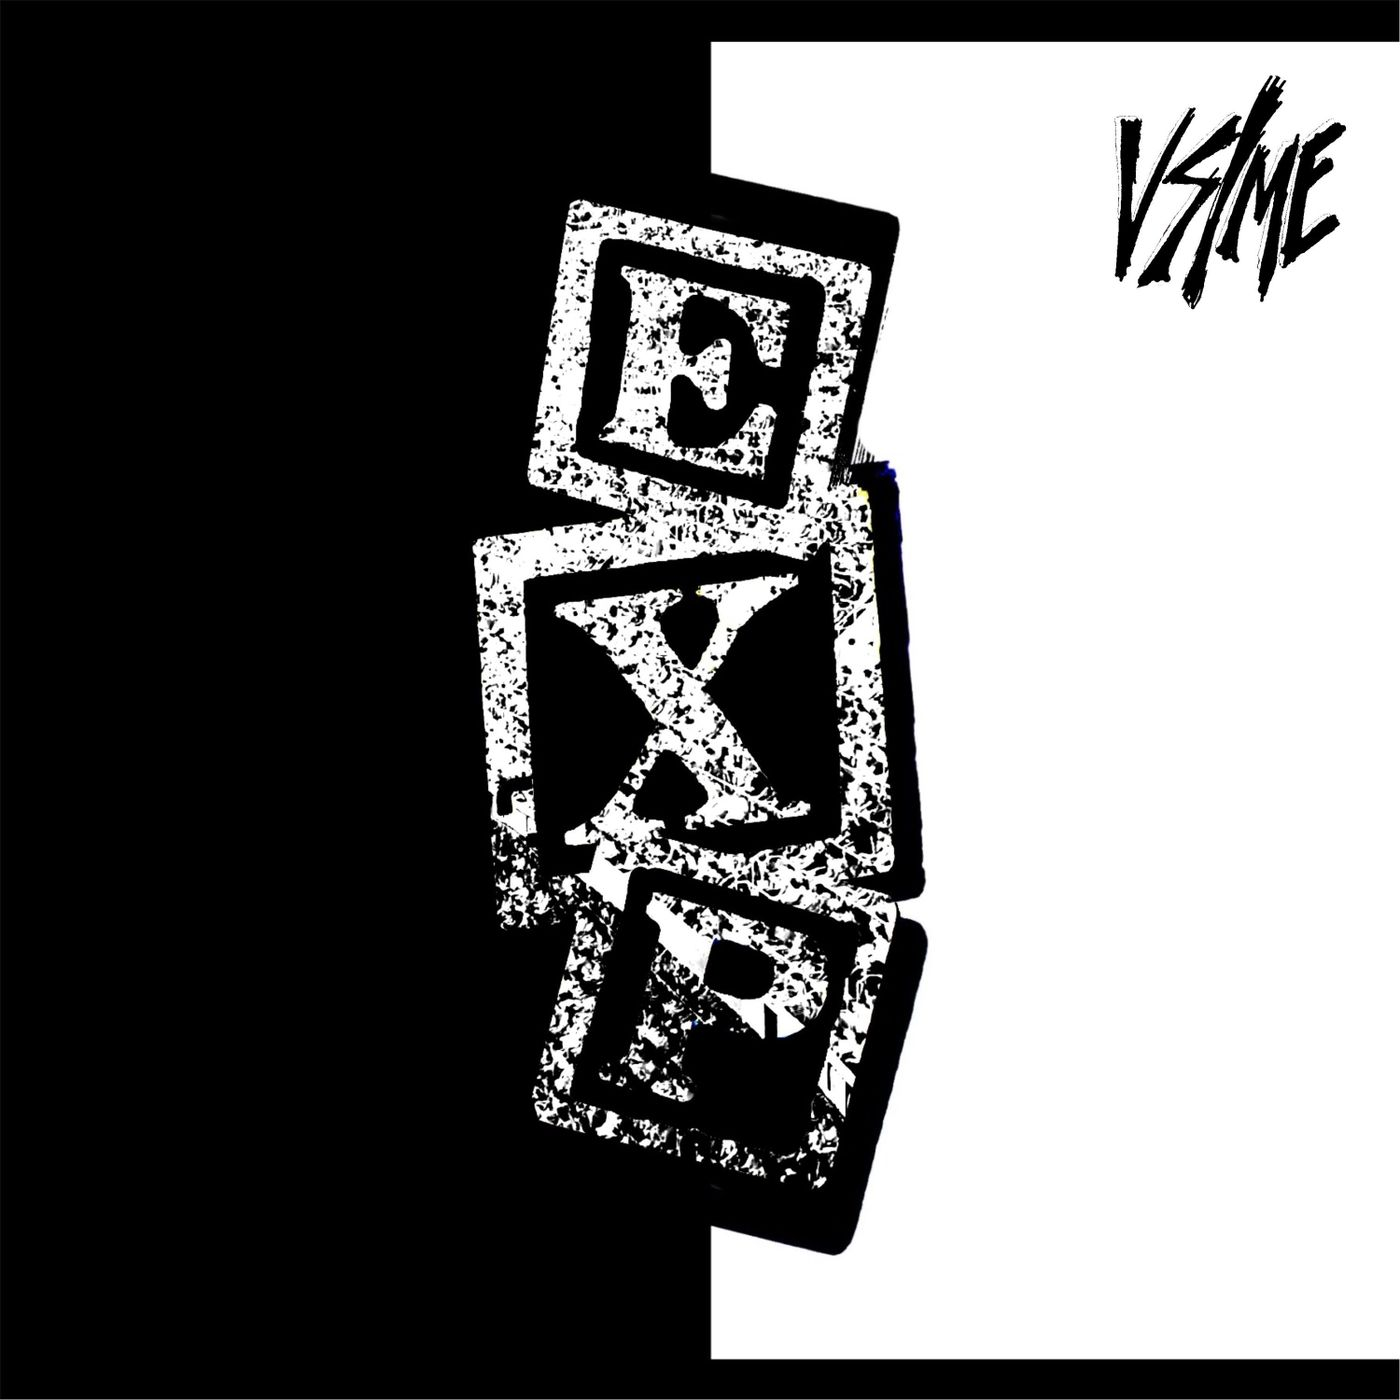 Versus Me - Exp [single] (2017)